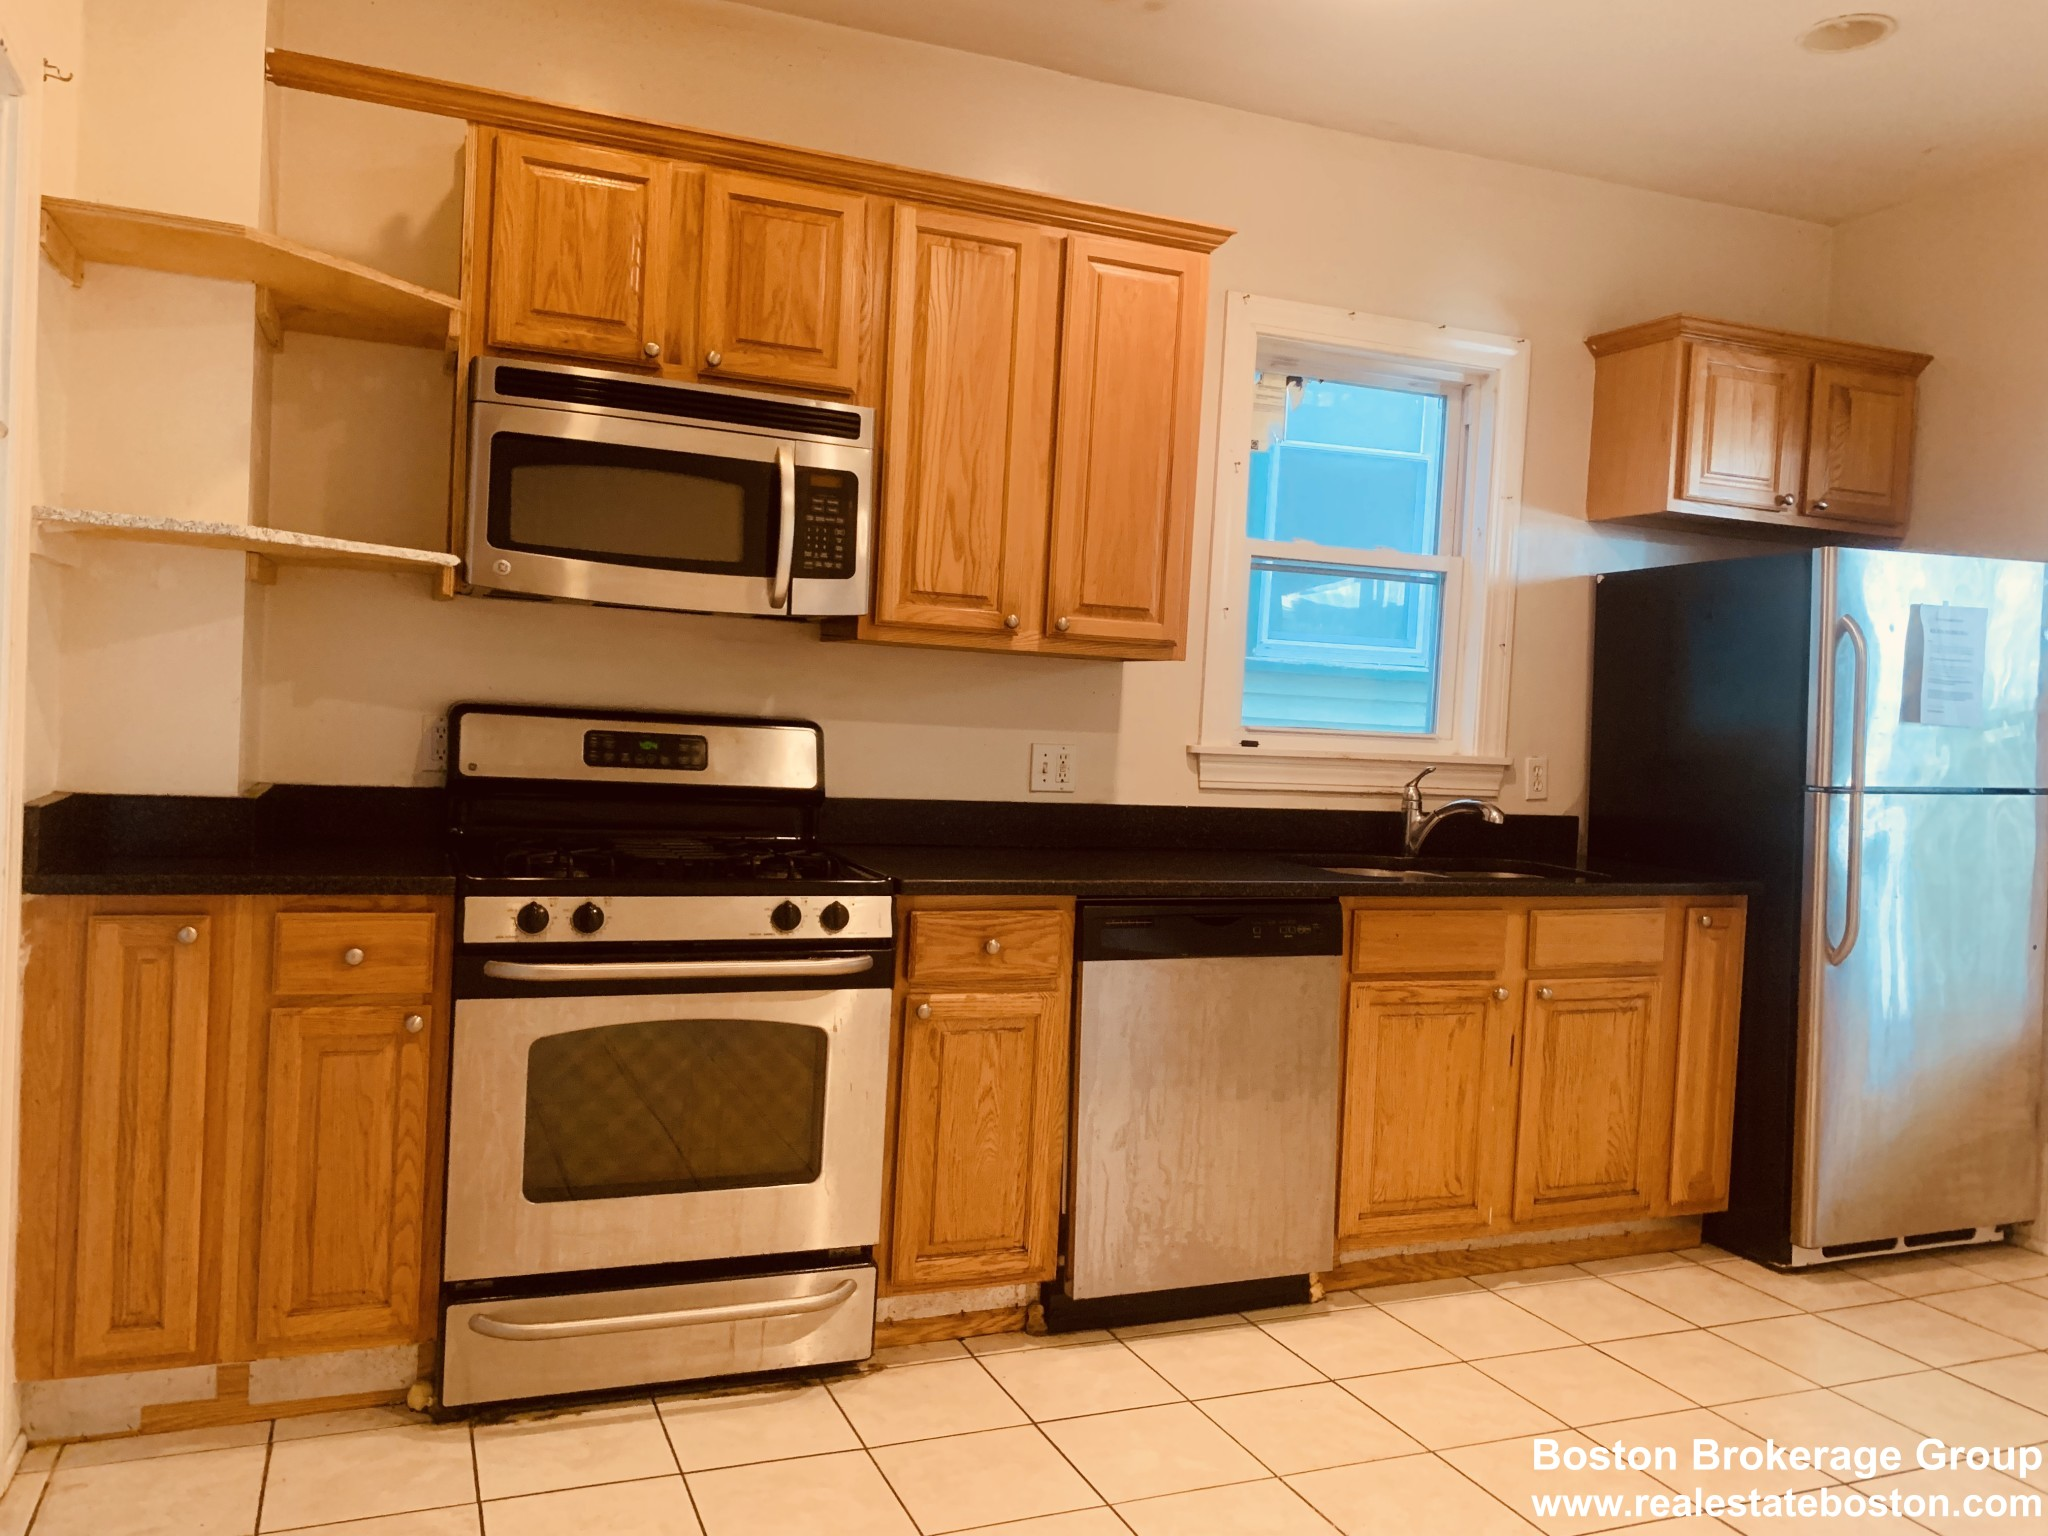 3.8 Beds, 1 Bath apartment in Boston, Mission Hill for $3,450